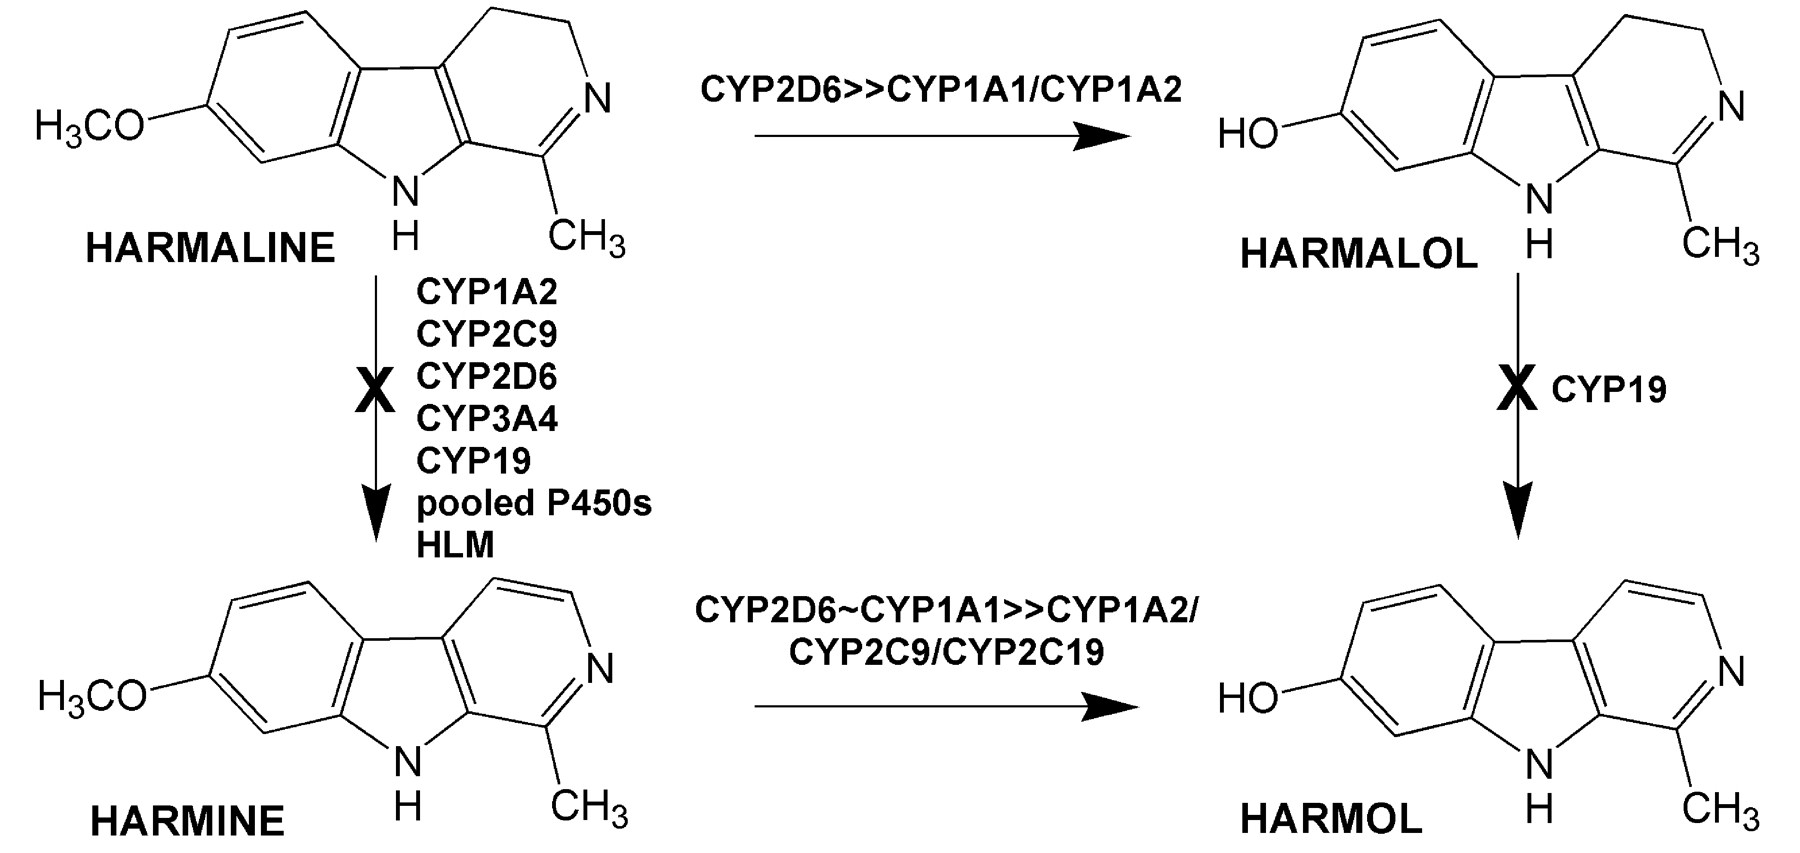 Contribution Of Individual Cytochrome P450 Isozymes To Theo